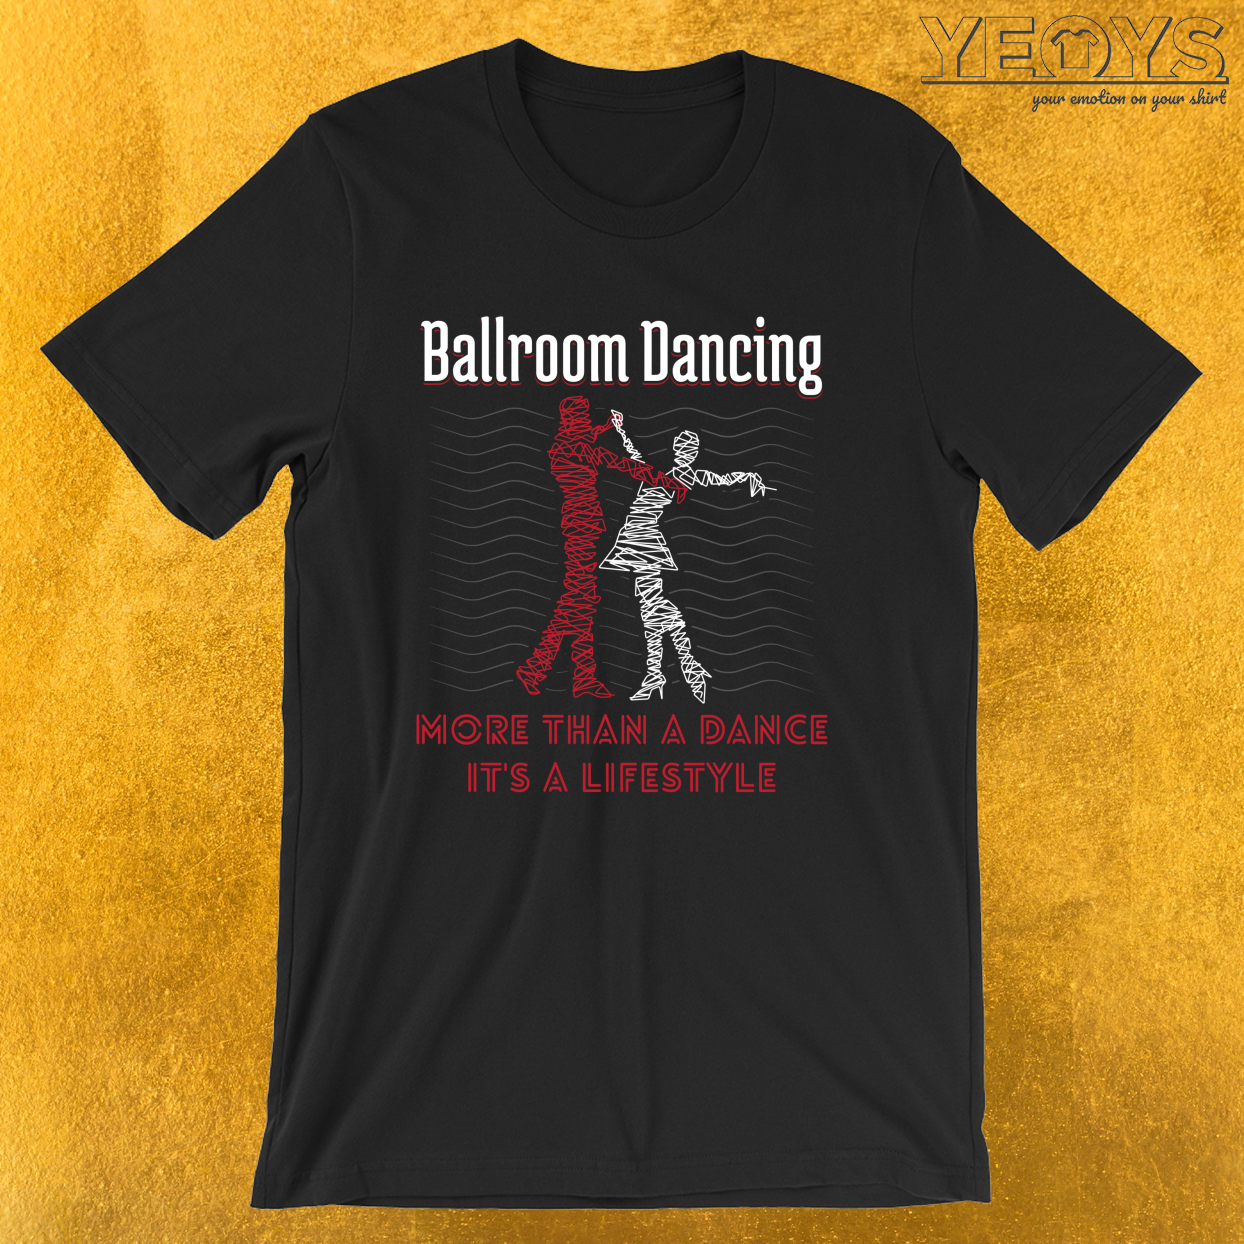 Ballroom Dancing More Than A Dance – Ballroom Dance Tee